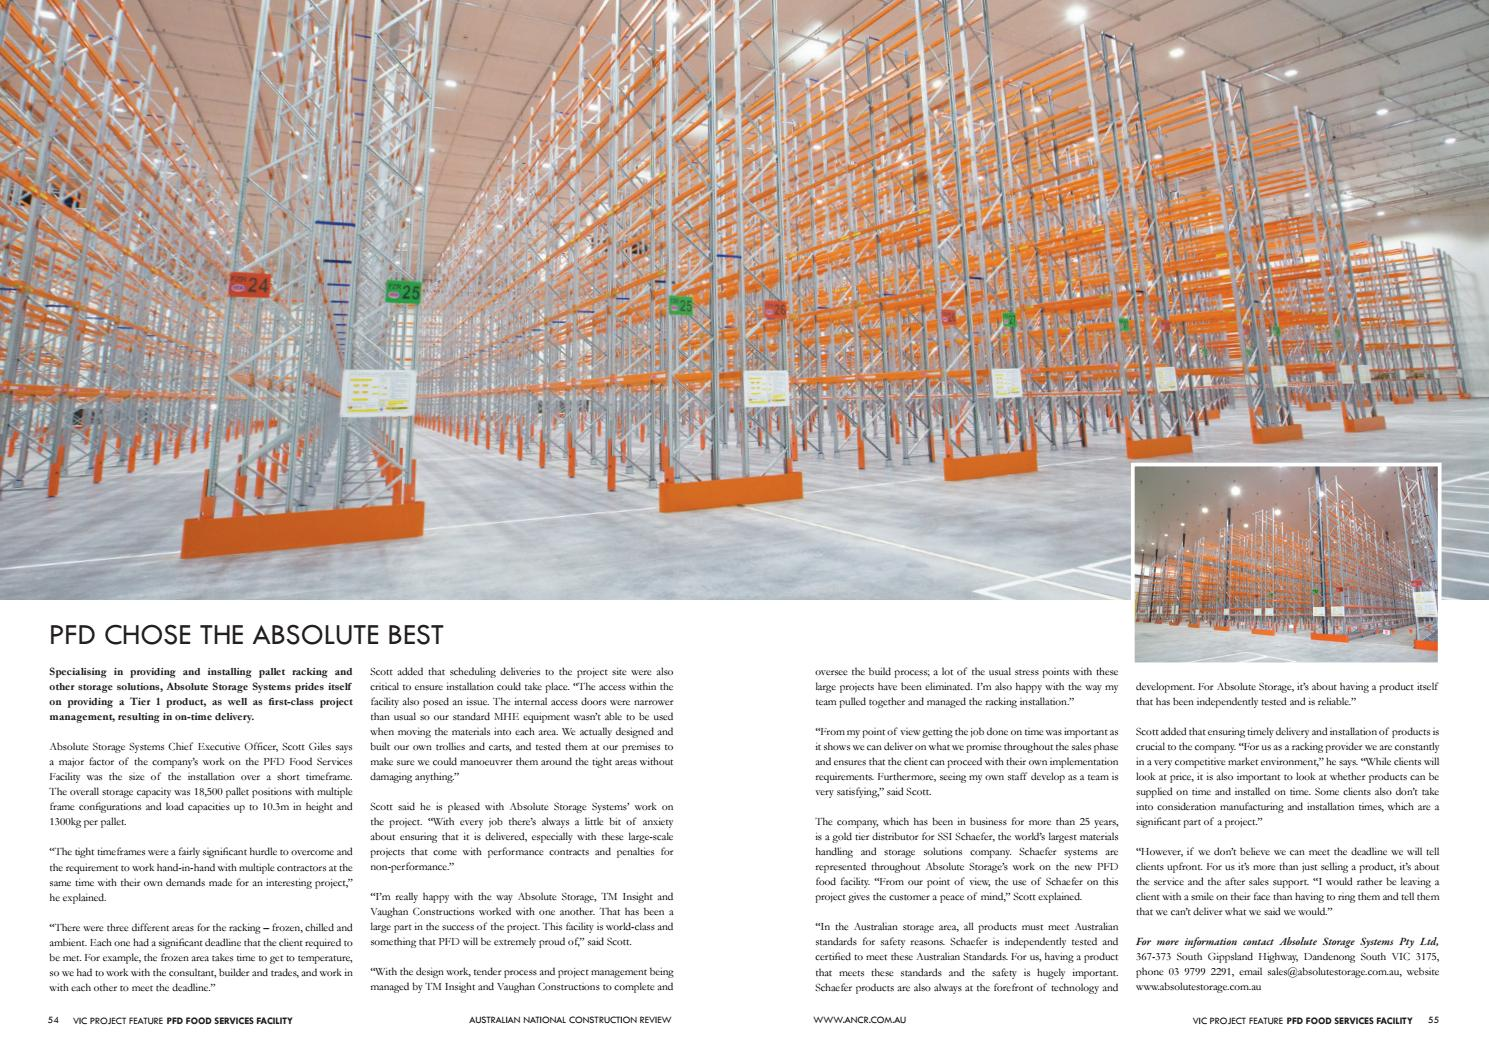 PFD Chose the Absolute Best by Scott Giles - issuu